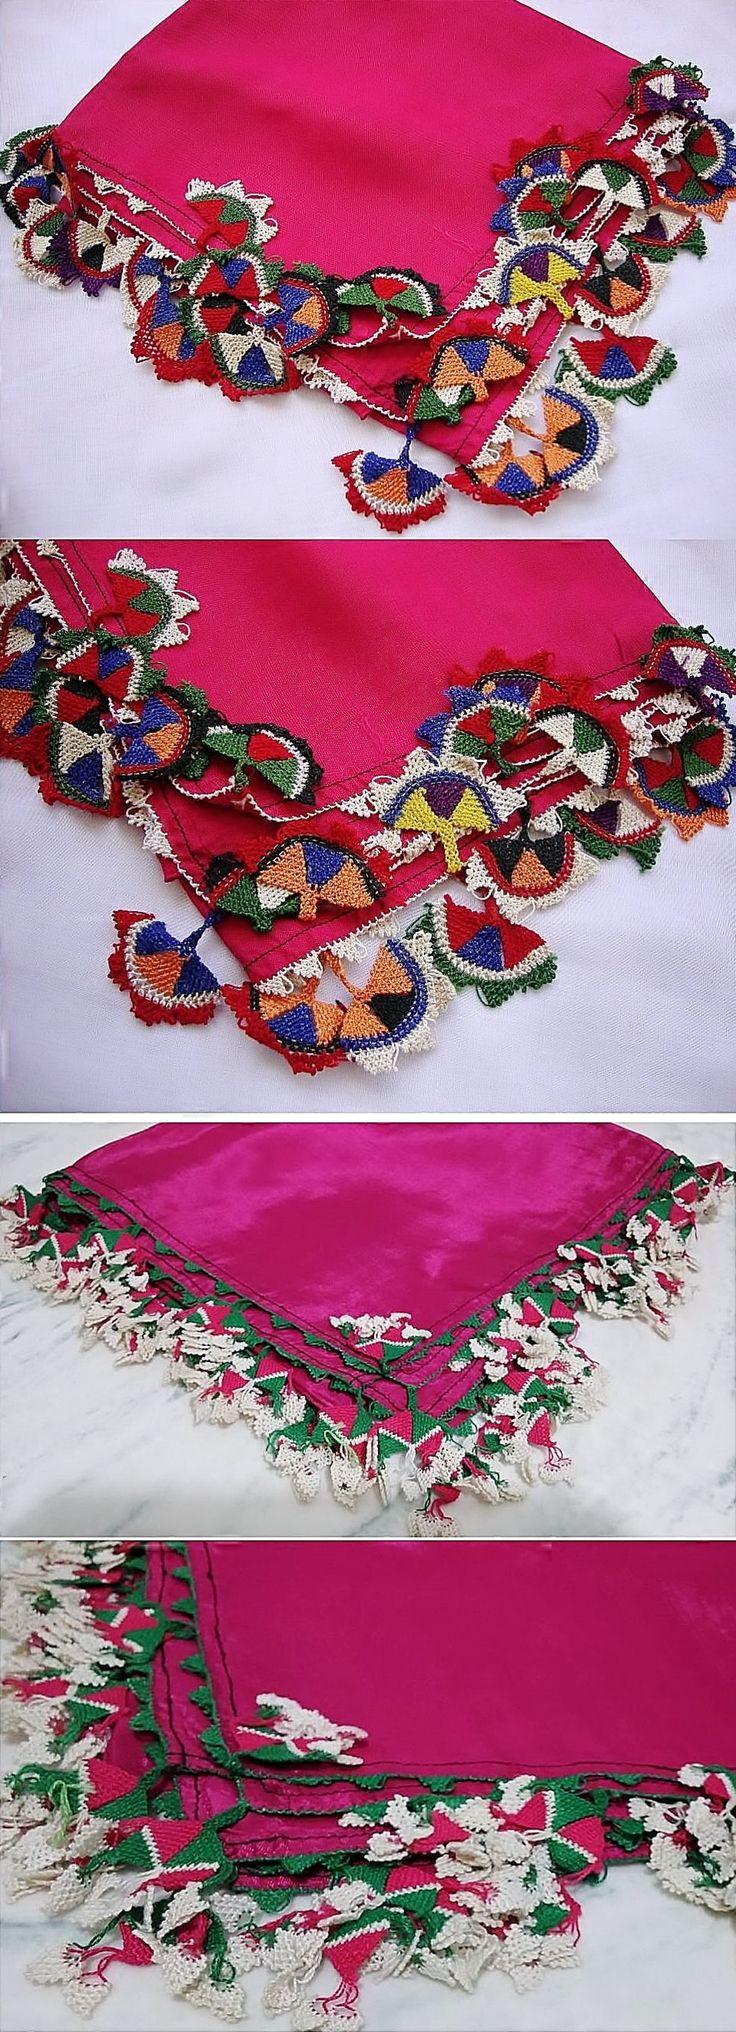 Two traditional silk 'oyalı yazma' (headscarves edged with Turkish lace) from Kozak Yaylası, near Bergama. Ca. mid-20th century. (Source: Tekin Uludoğan, Balıkesir).